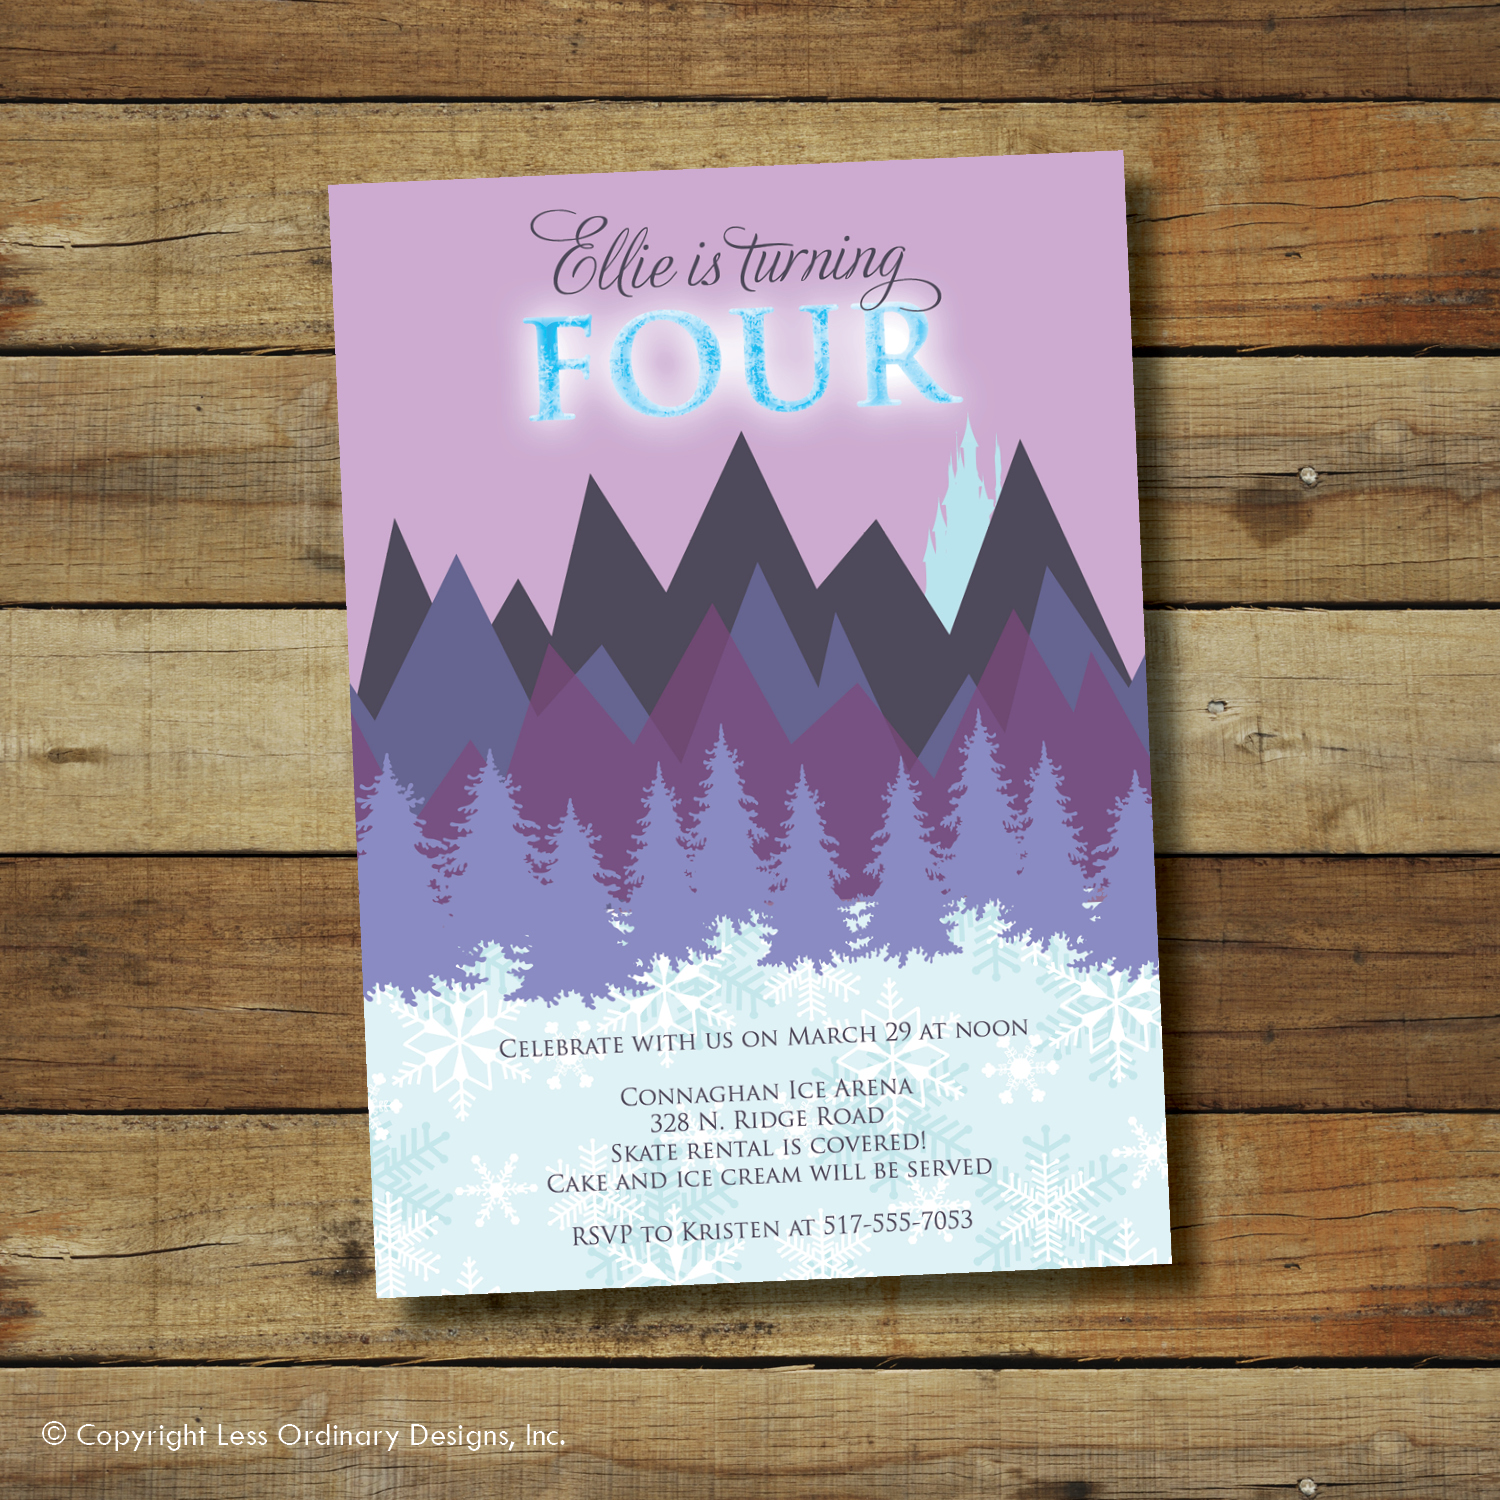 https://www.etsy.com/listing/183112054/frozen-castle-birthday-party-invitation?ref=shop_home_active_1&ga_search_query=frozen